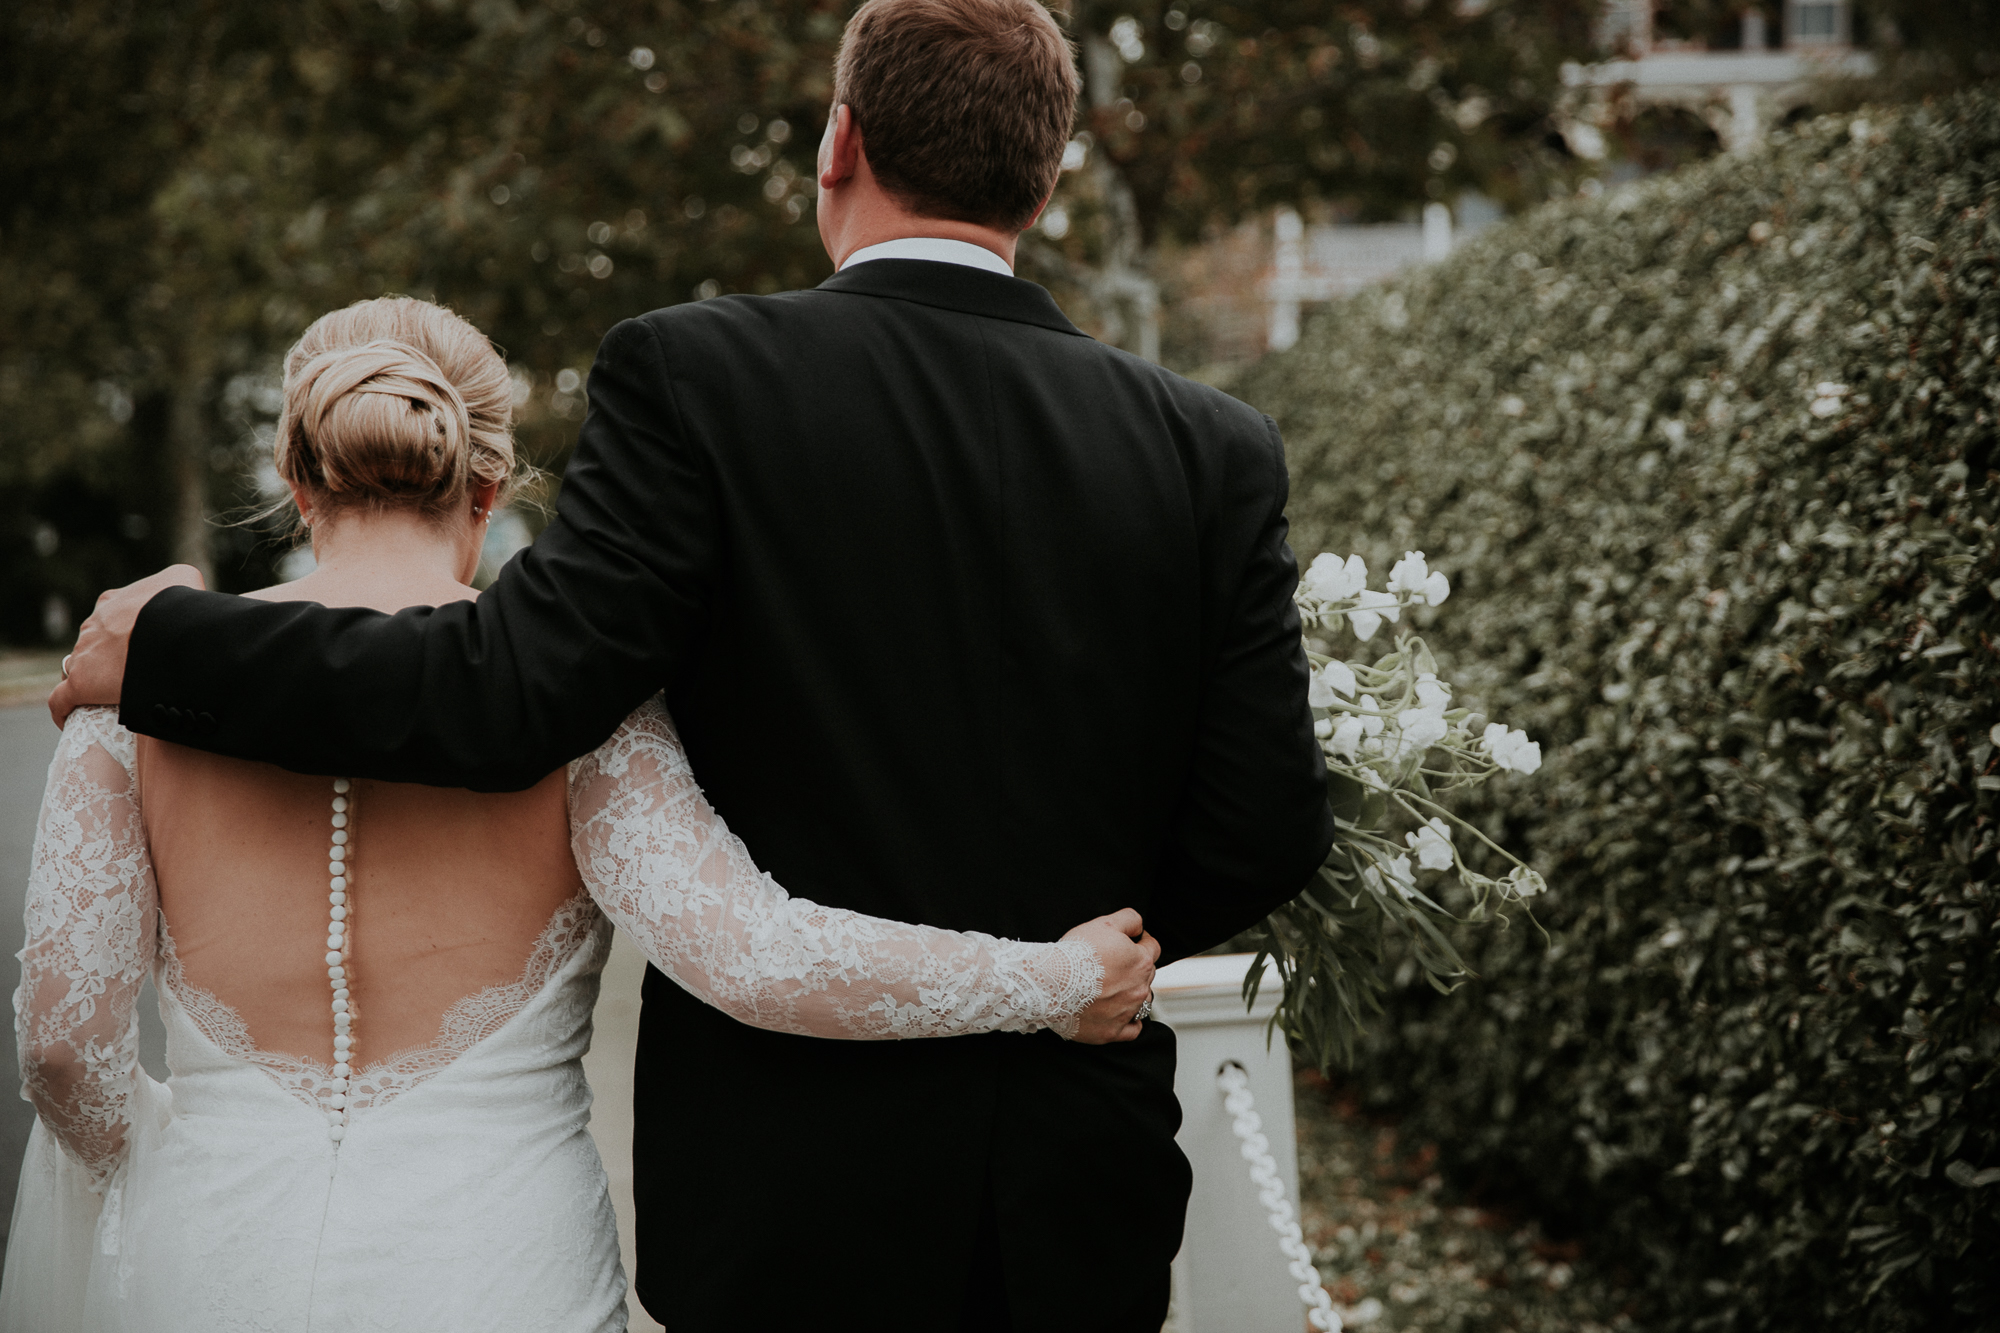 - How To Make Your wedding Even BetterThe one thing that you walk away with after you wedding is your photos or videos. below are a list of tips that we have gathered over the years to help you make your wedding even better. with these tips your photos and videos will be timeless and worth reliving!